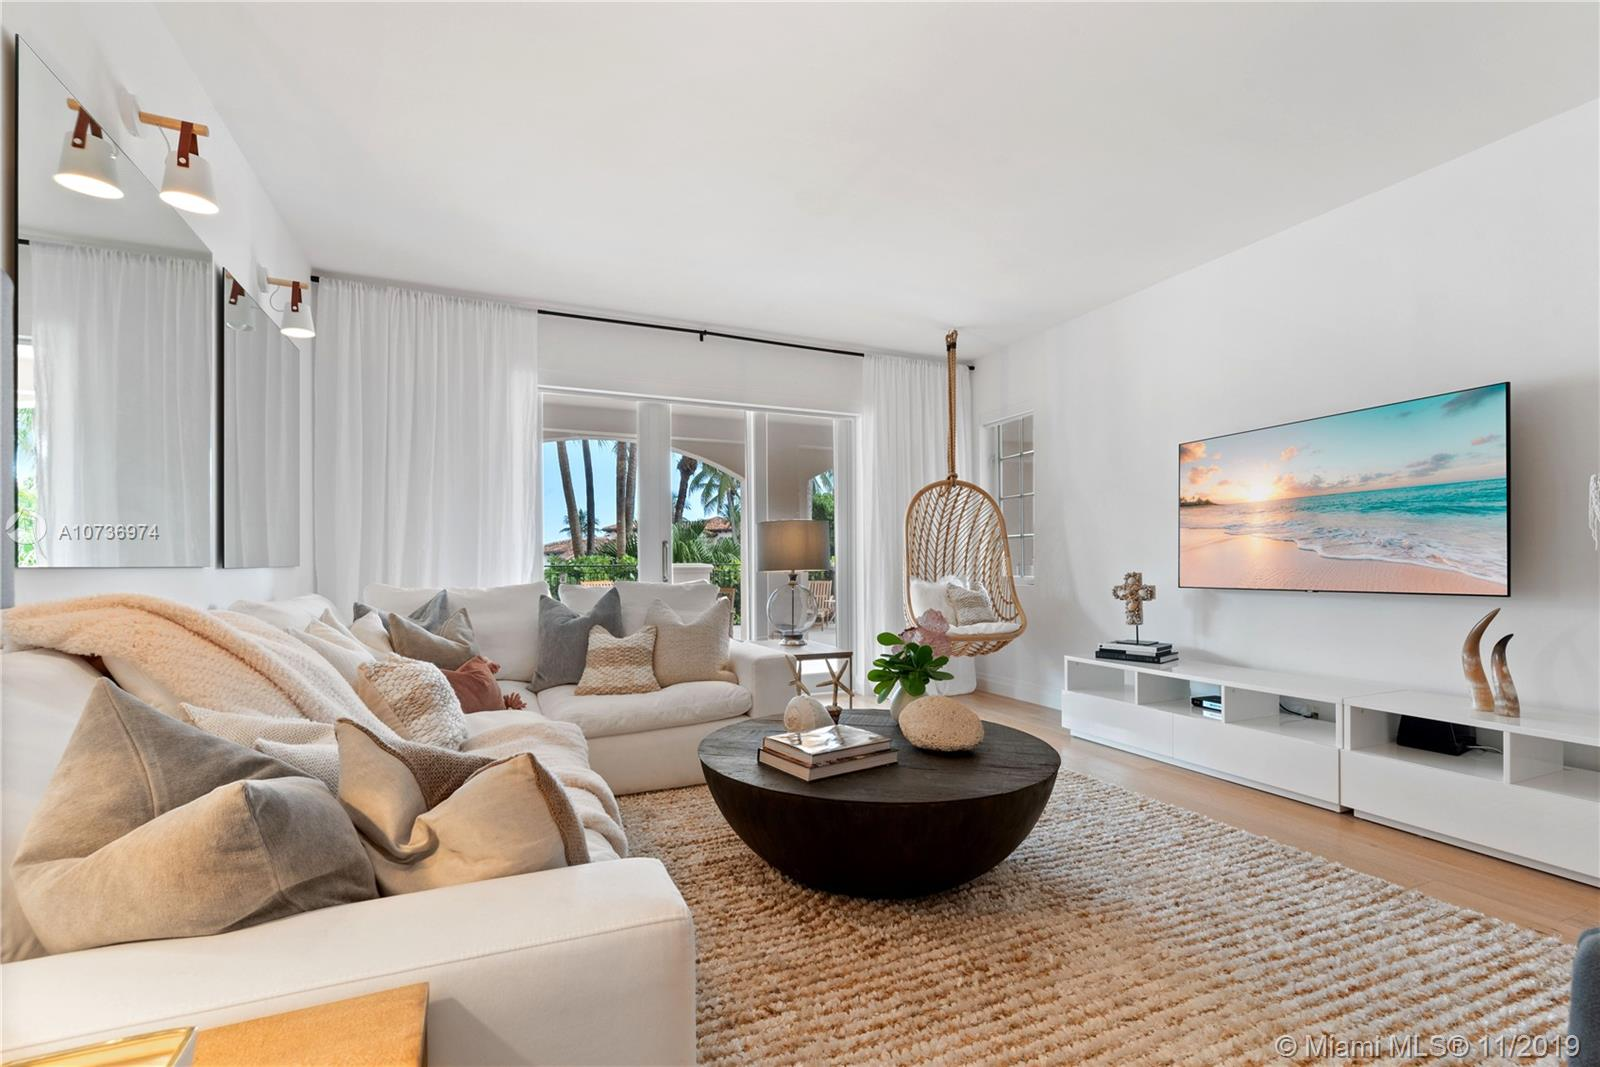 19216 Fisher Island Dr # 19216, Miami Beach, Florida 33109, 3 Bedrooms Bedrooms, ,3 BathroomsBathrooms,Residential Lease,For Rent,19216 Fisher Island Dr # 19216,A10736974